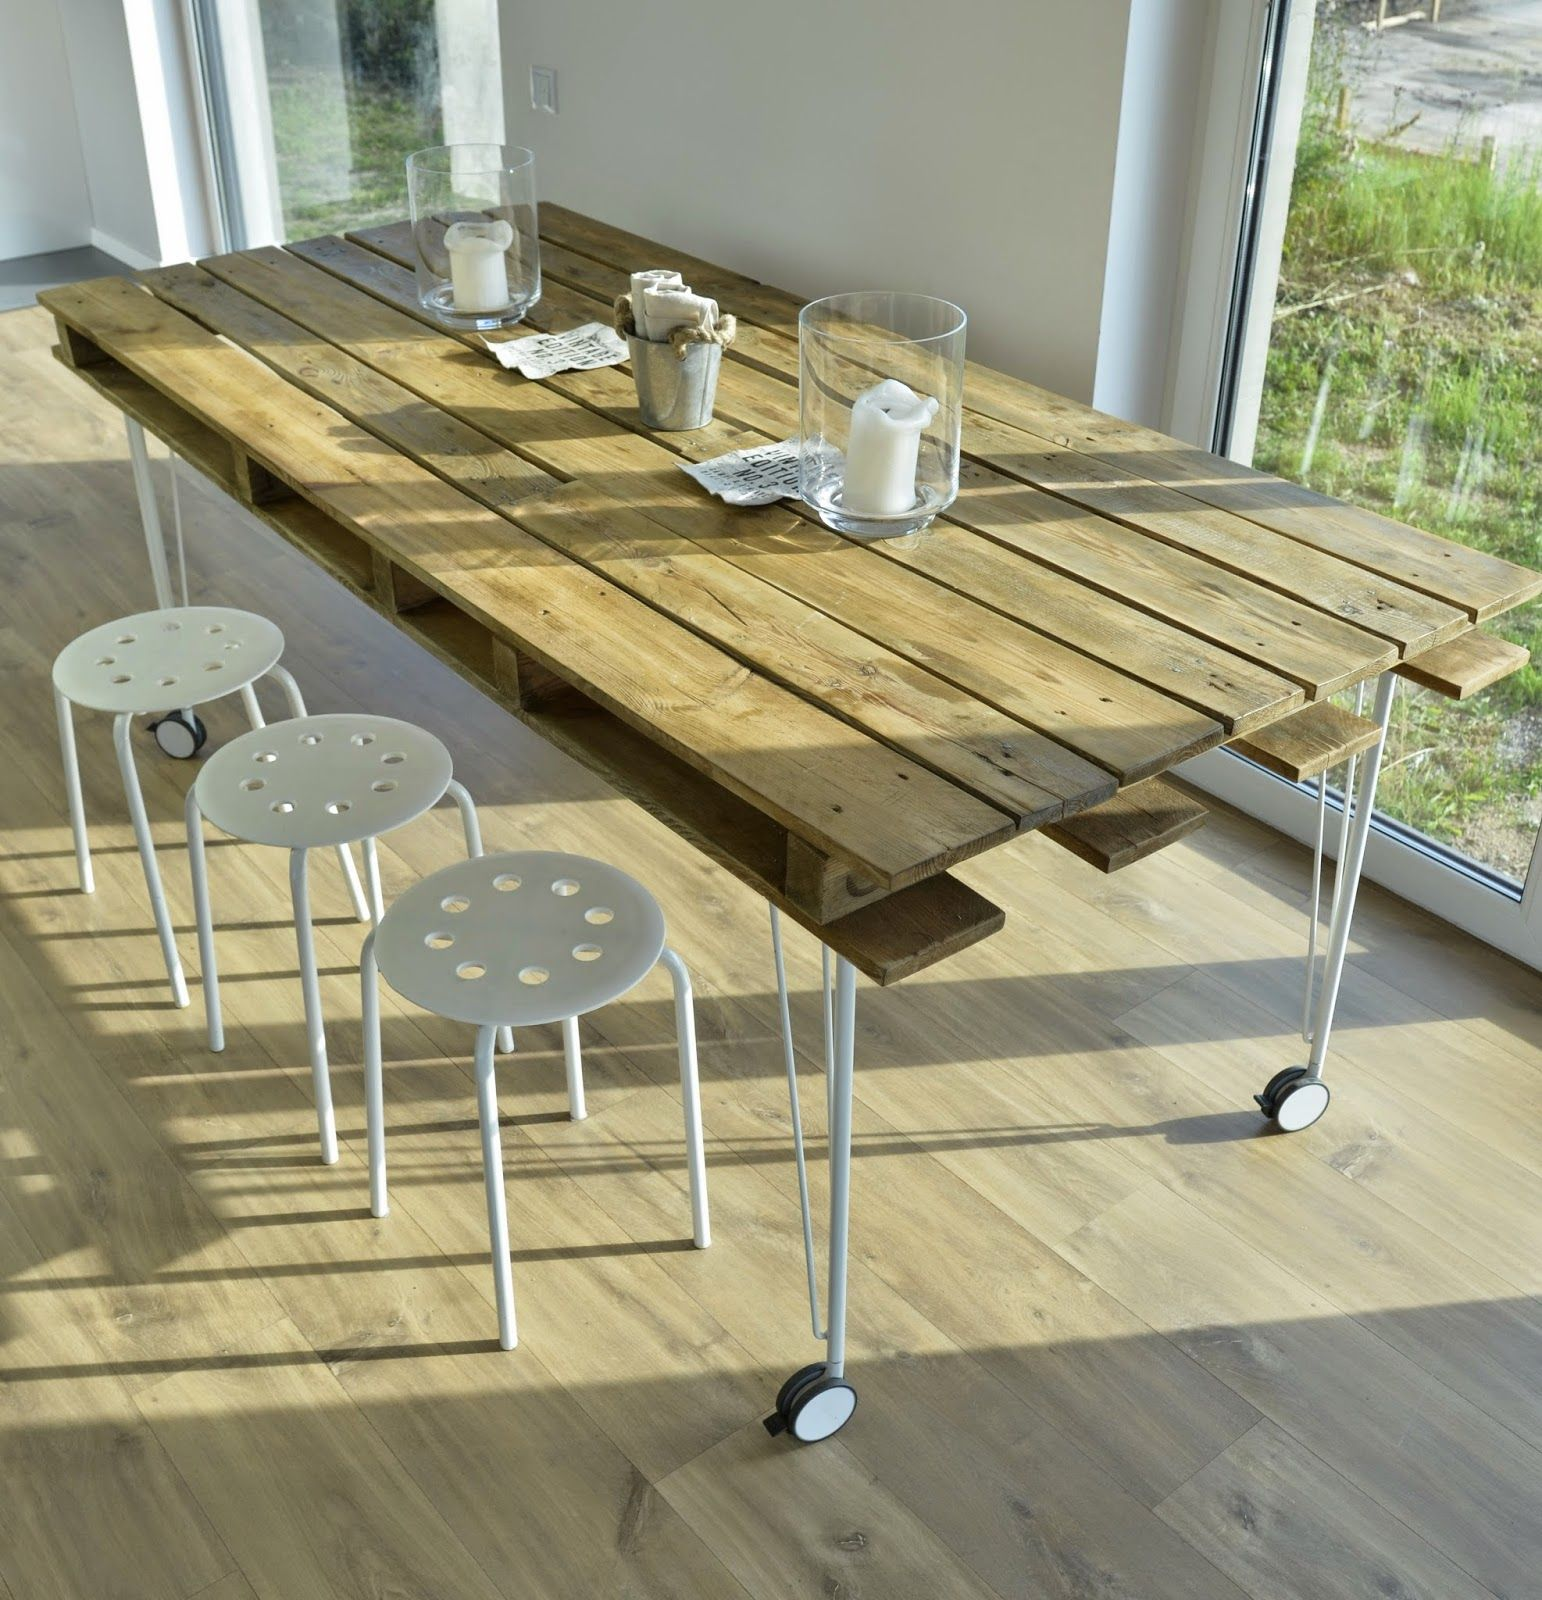 Ideas Book Diy Pallet Dining Table Meja Palet Perabot Palet